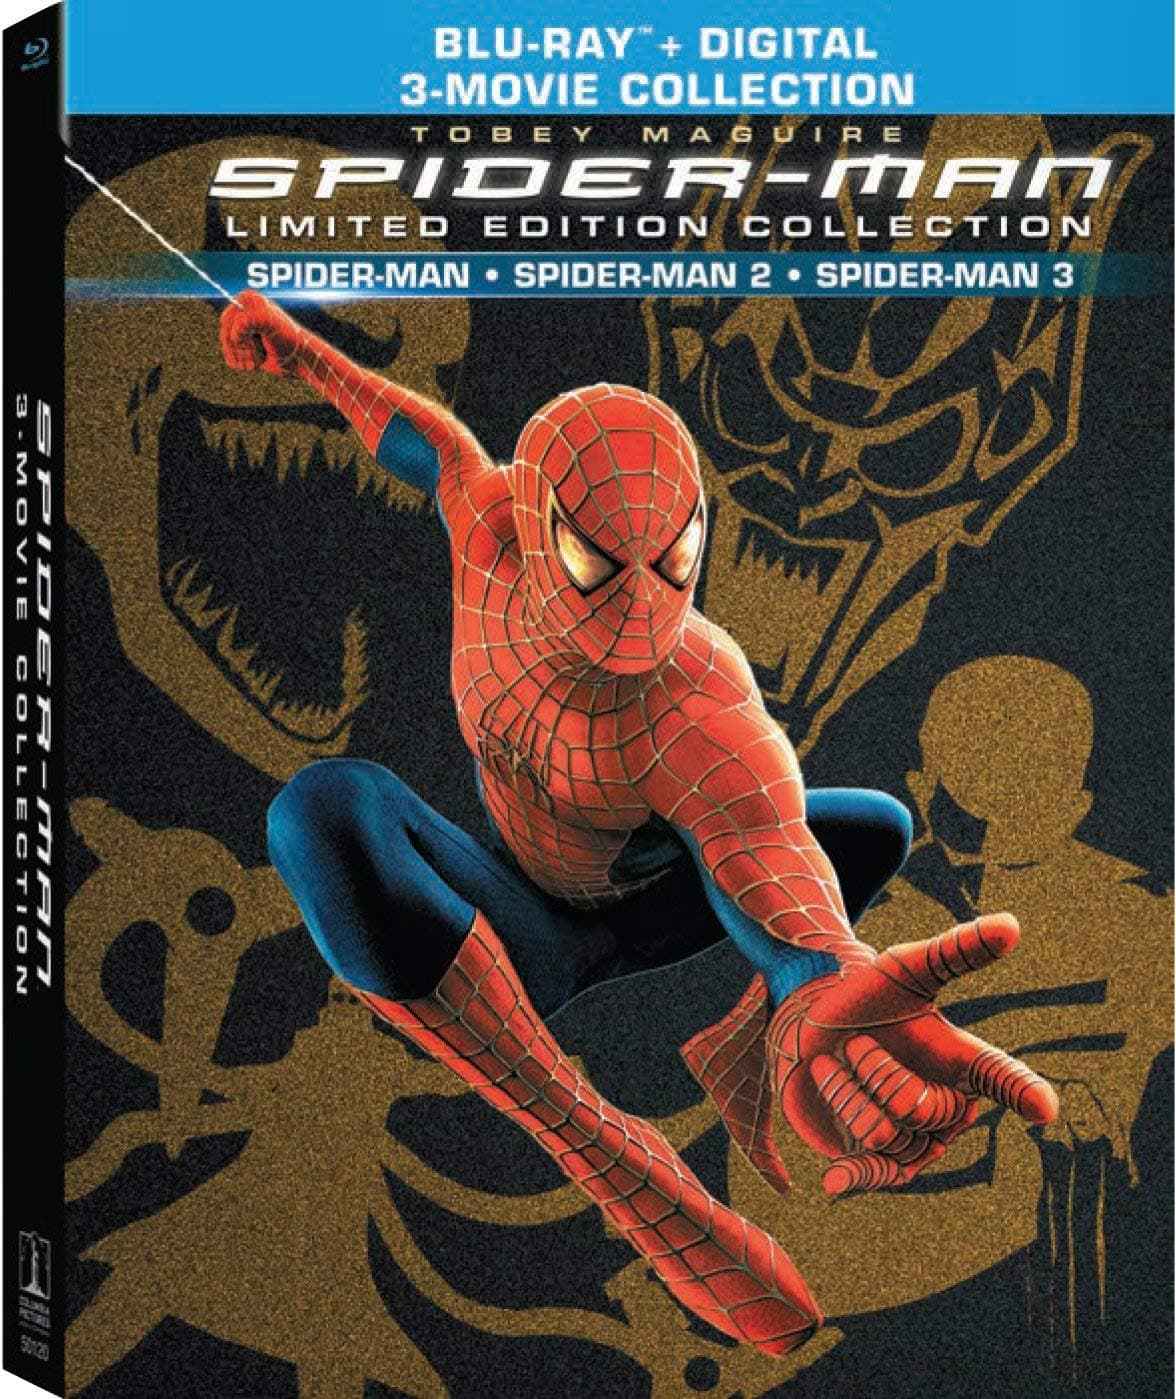 Spider-Man Trilogy Limited Collector's Edition (Blu-Ray + Digital HD) $16.99 via Amazon *Lightning Deal*